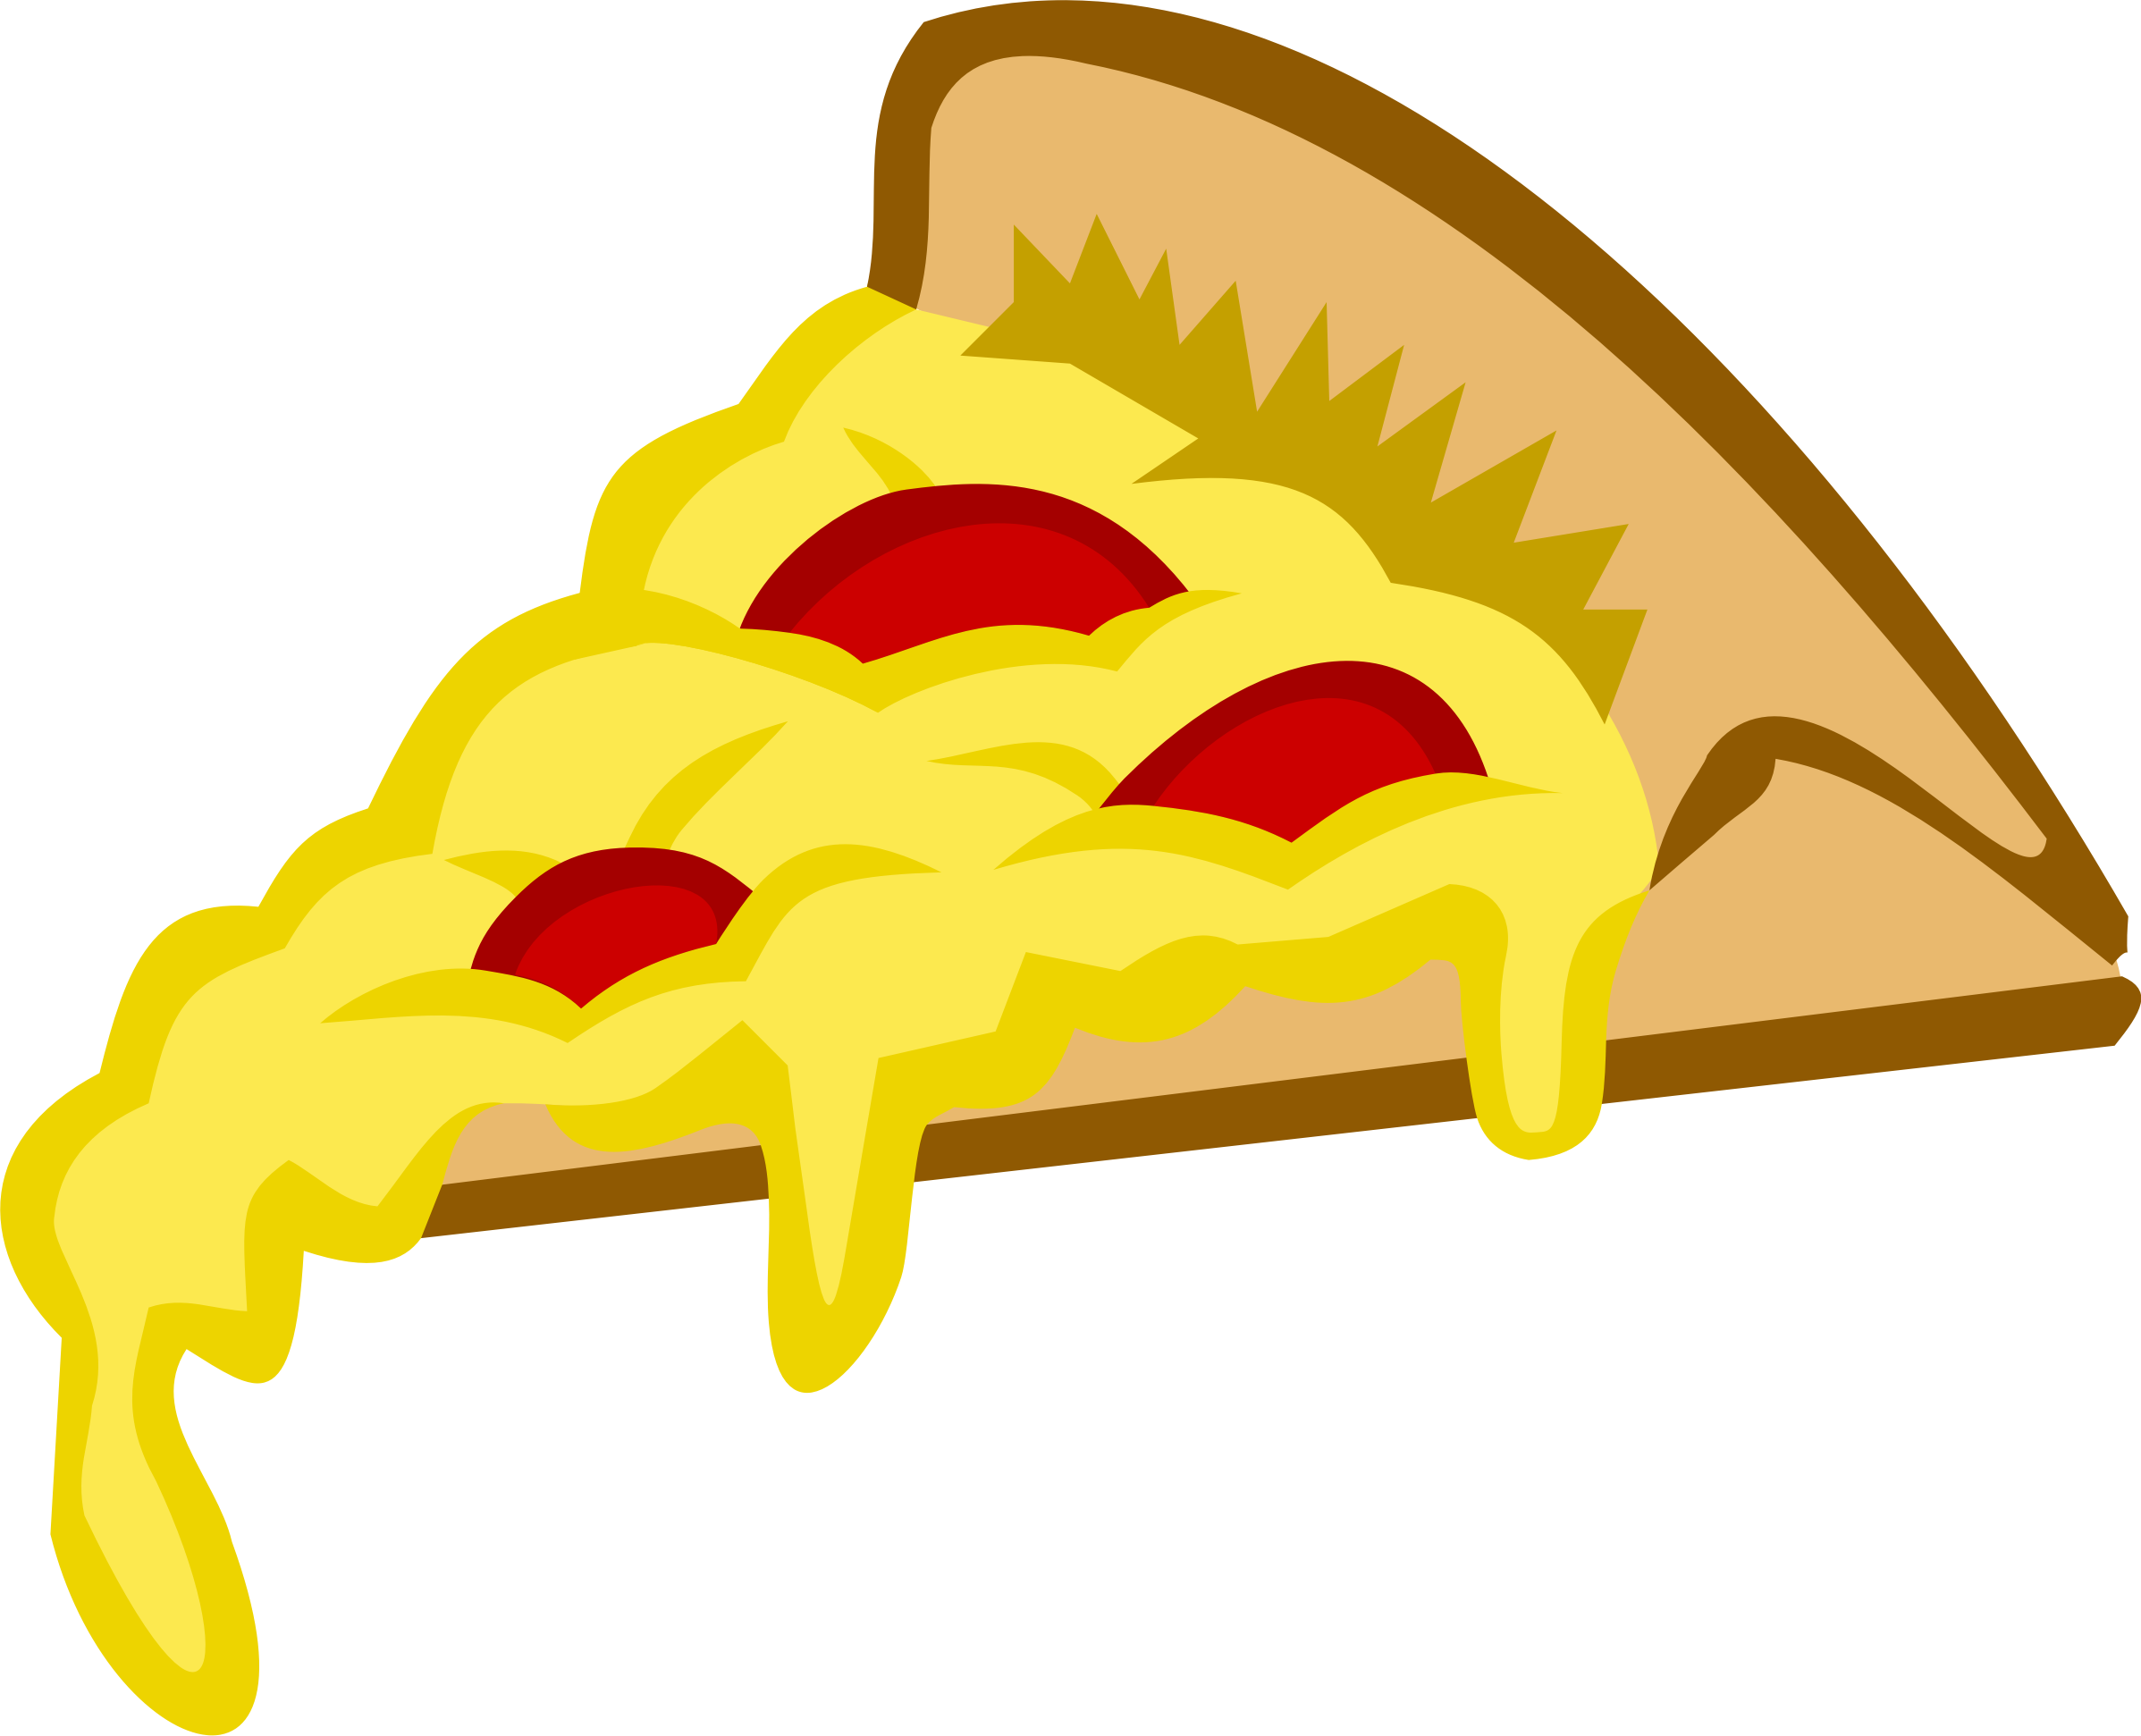 Pizza Slice in Tango Colors by micro_giraffe